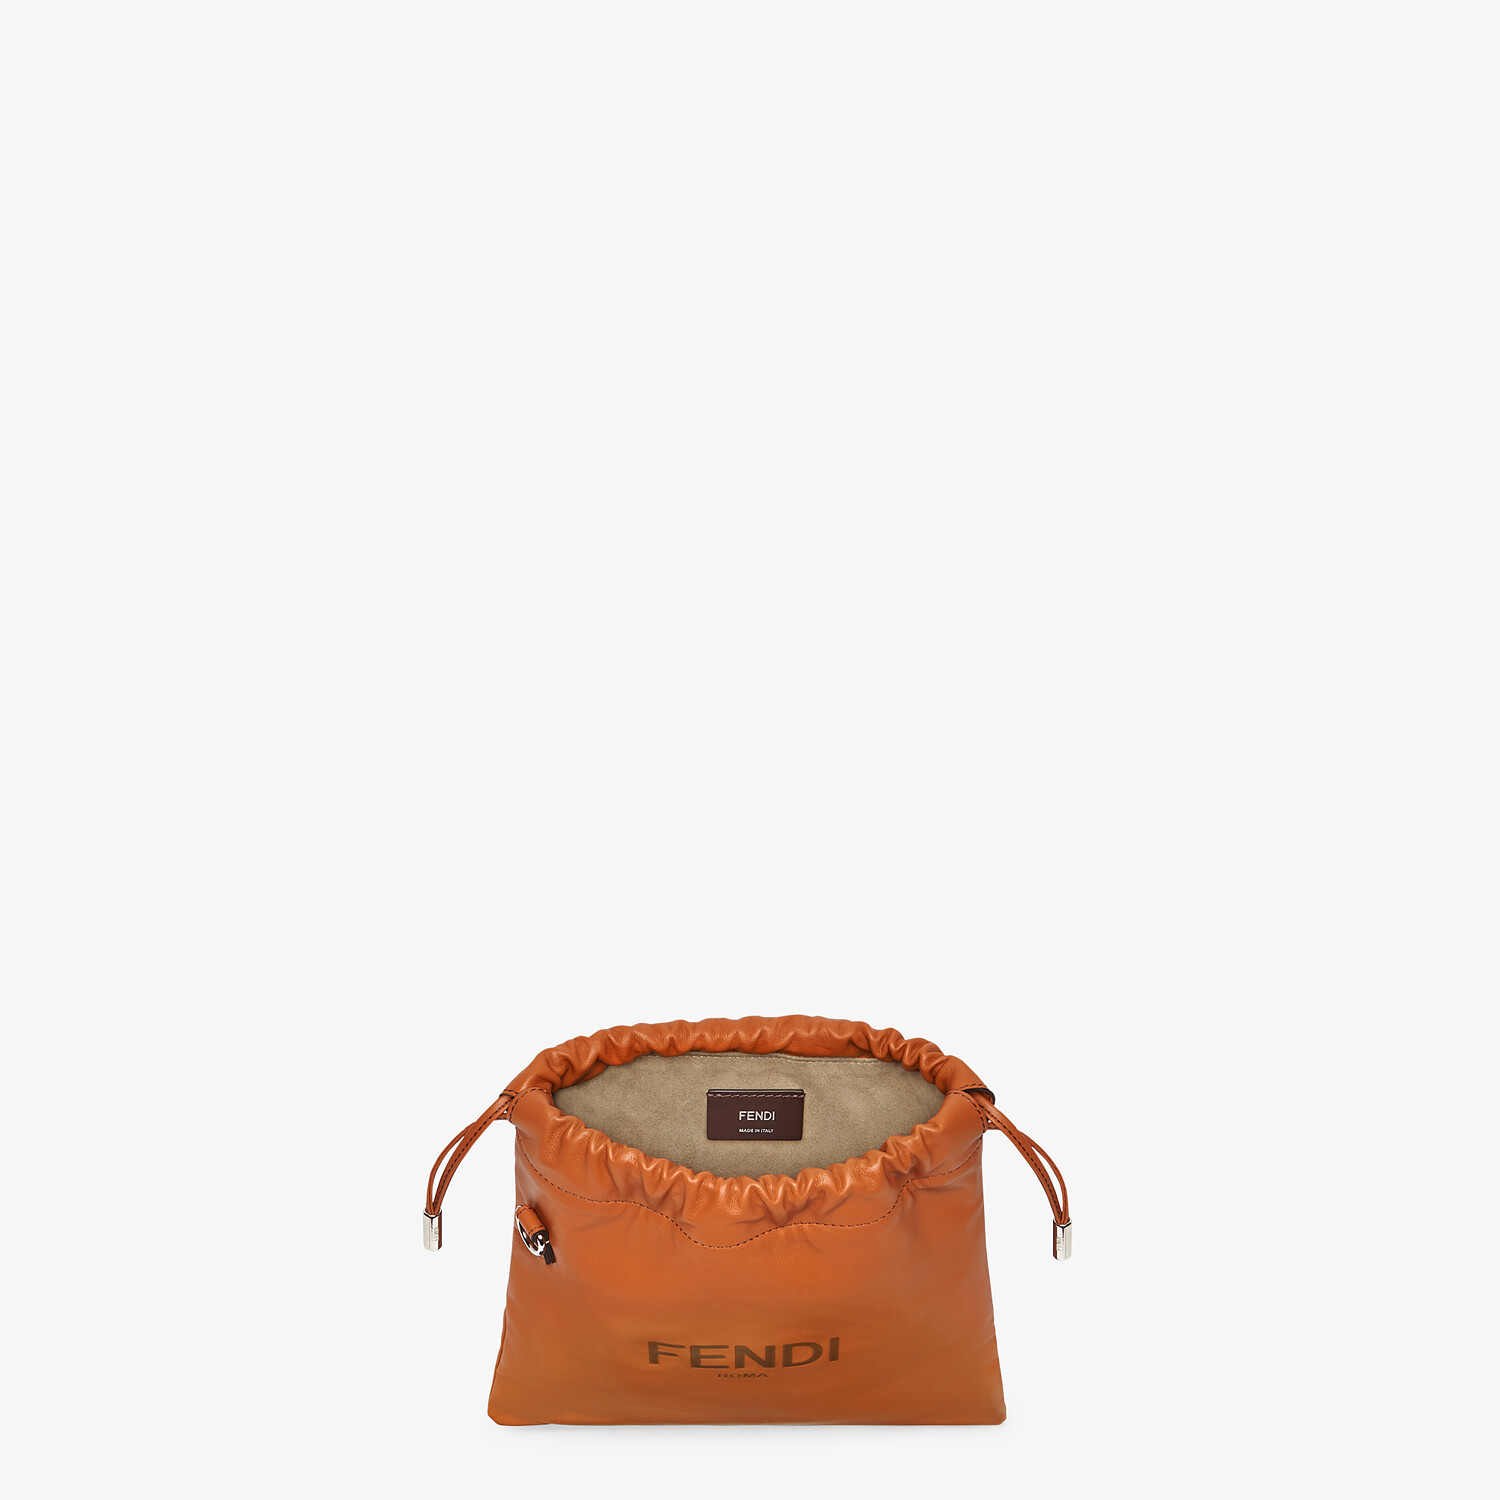 FENDI FENDI PACK SMALL POUCH - Brown leather bag - view 4 detail